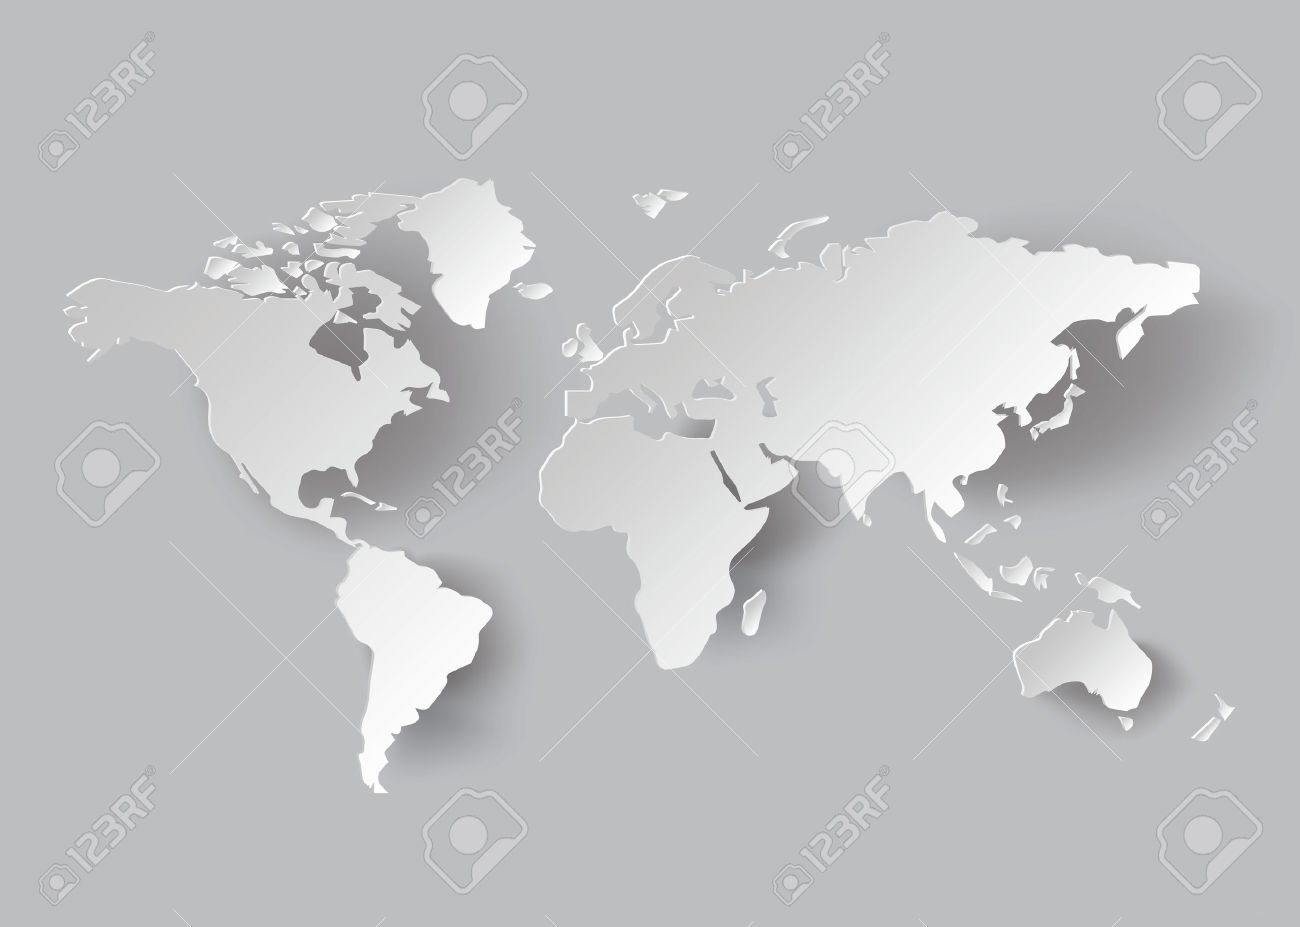 Colored The World Borders Pictures Stock Map Continents Images.